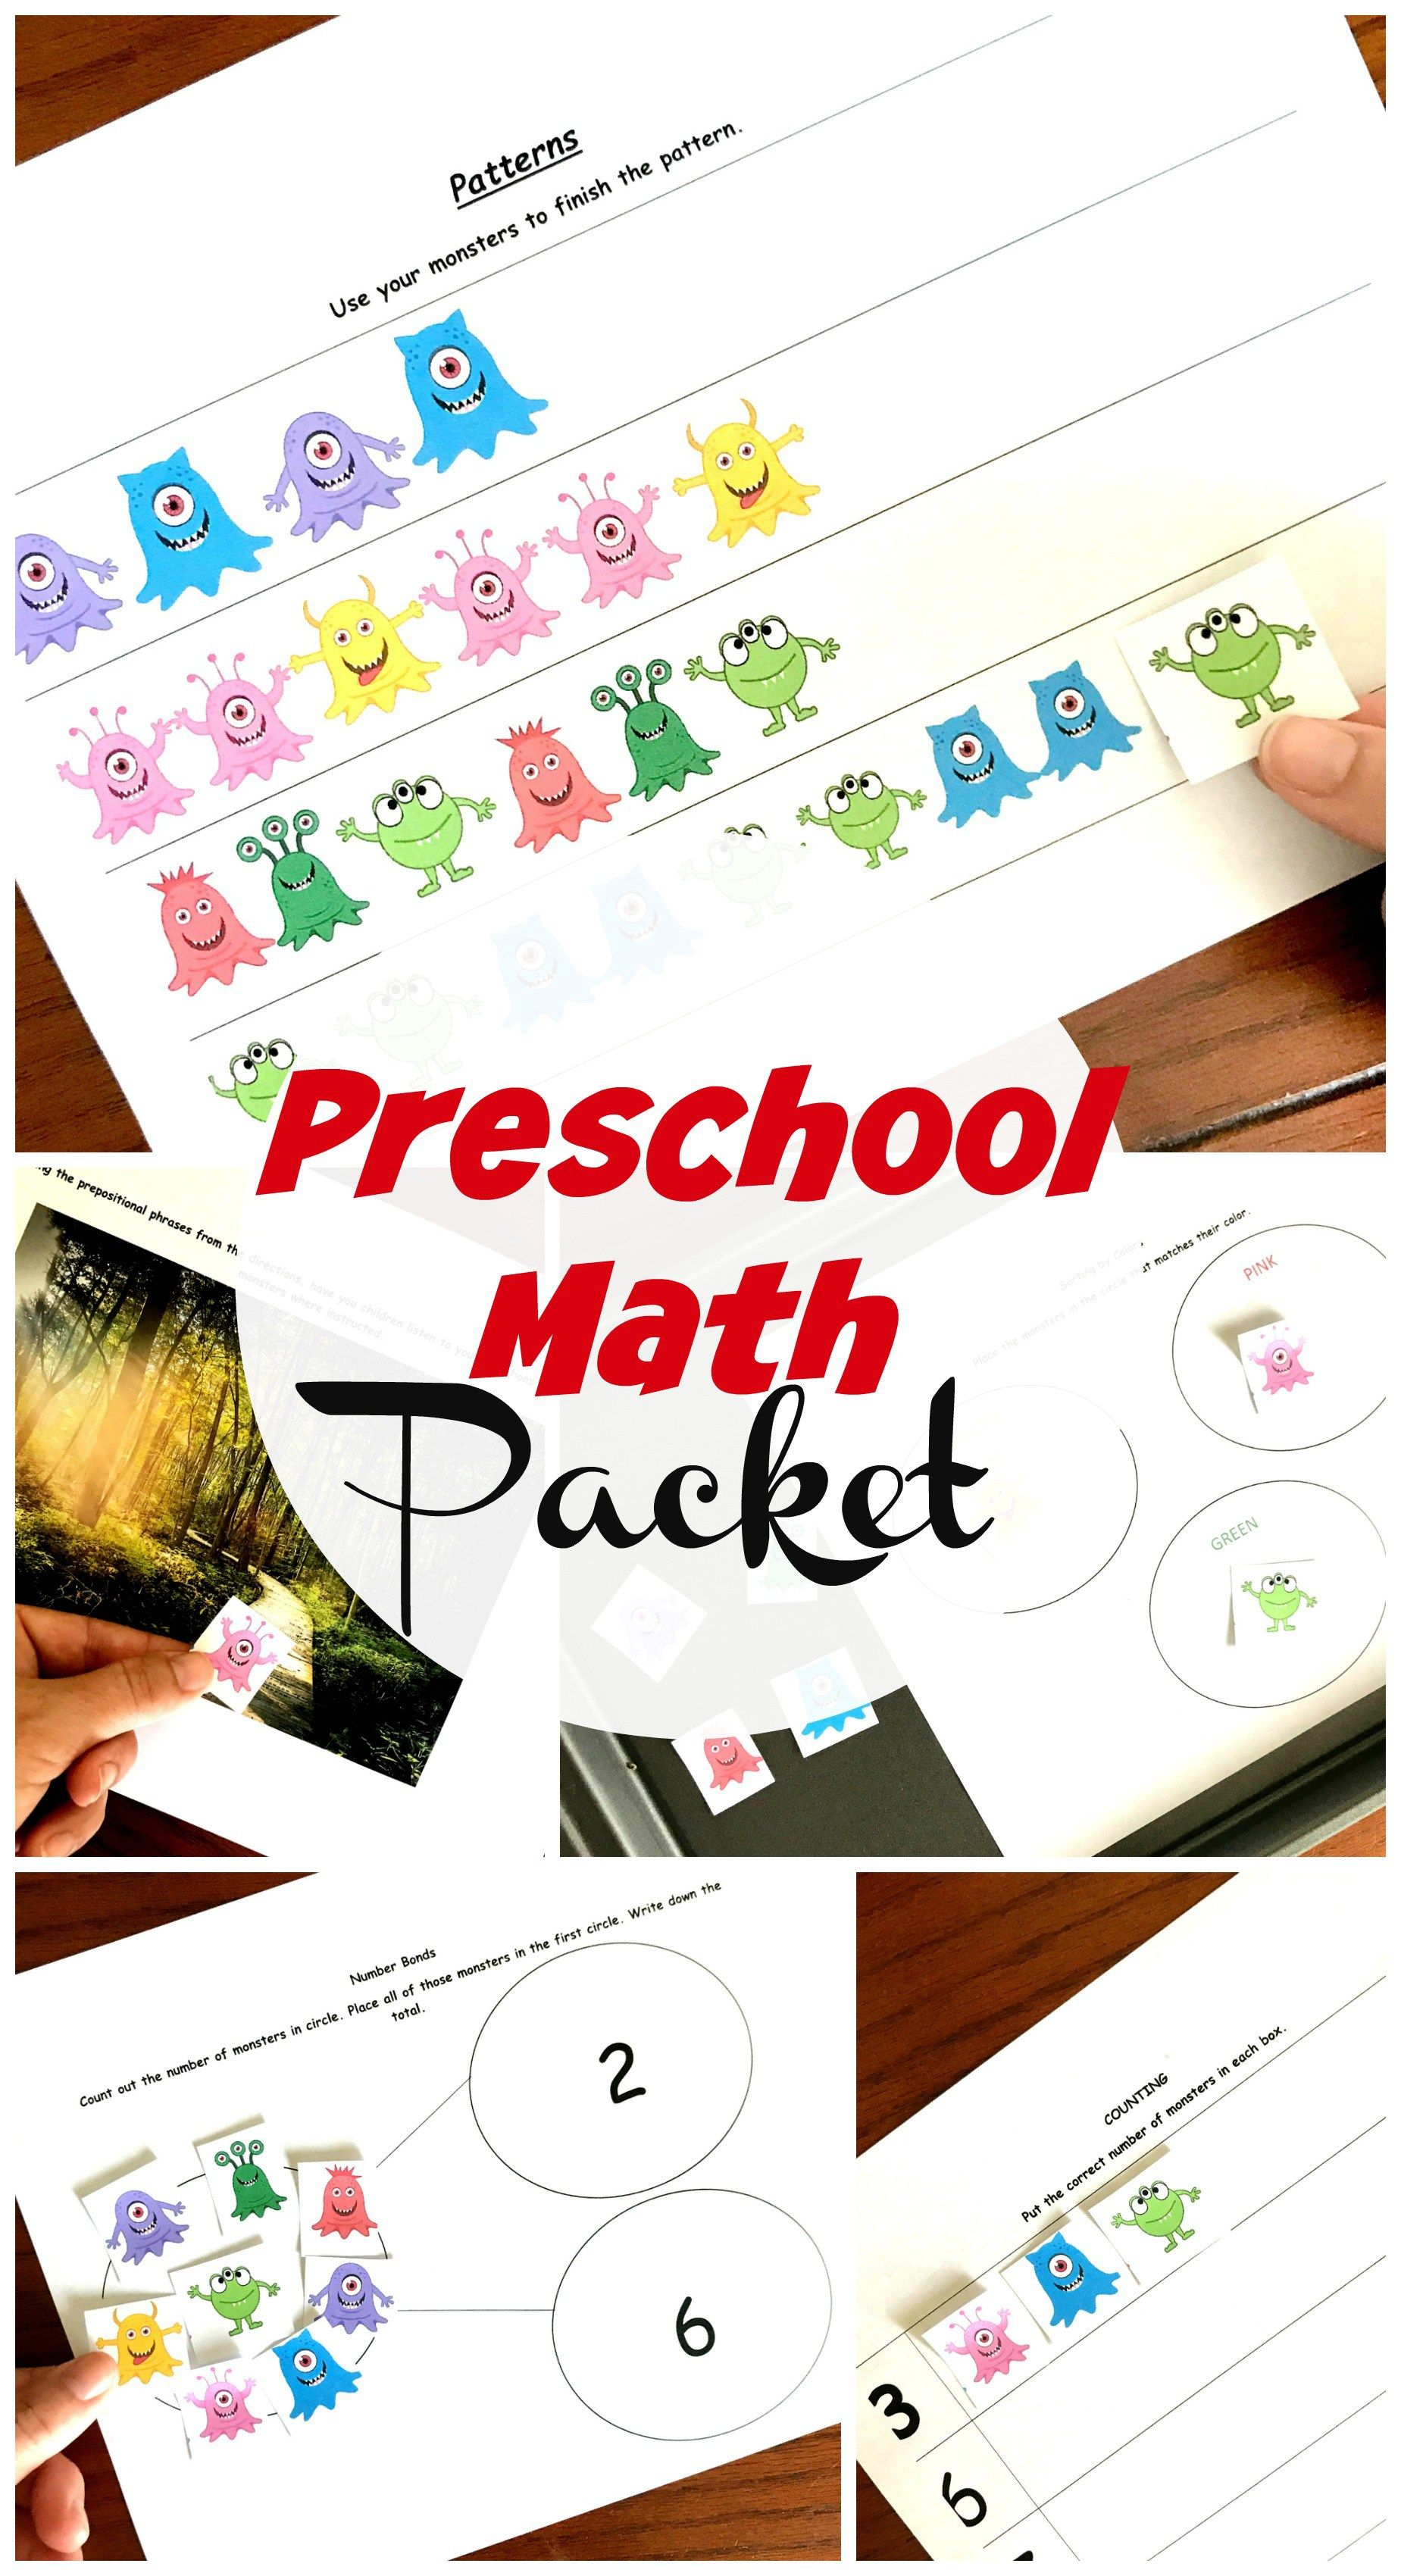 5 Preschool Math Worksheets To Practice Patterns Sorting